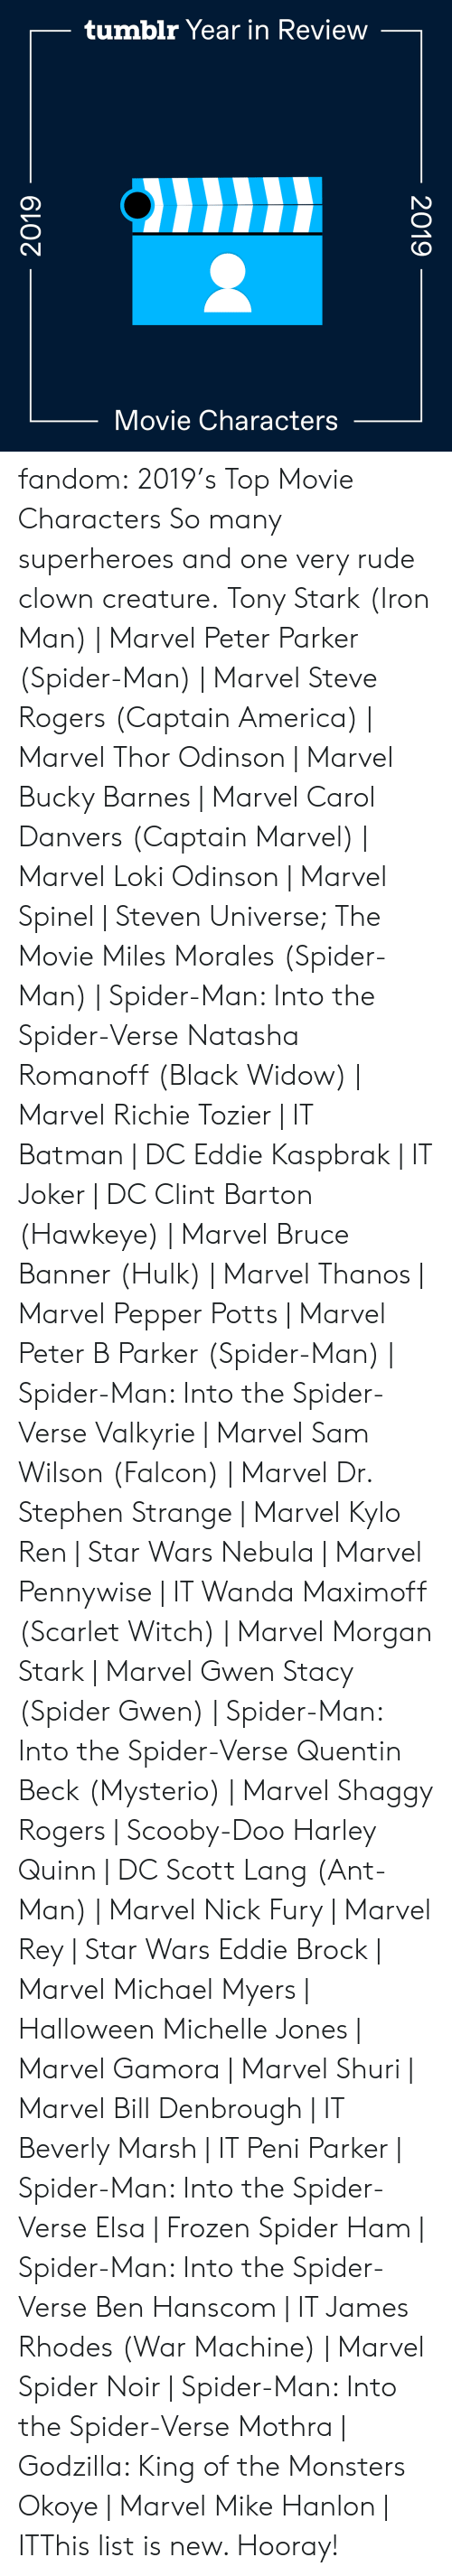 scott: tumblr Year in Review  Movie Characters  2019  2019 fandom:  2019's Top Movie Characters  So many superheroes and one very rude clown creature.  Tony Stark (Iron Man) | Marvel  Peter Parker (Spider-Man) | Marvel  Steve Rogers (Captain America) | Marvel  Thor Odinson | Marvel  Bucky Barnes | Marvel  Carol Danvers (Captain Marvel) | Marvel  Loki Odinson | Marvel  Spinel | Steven Universe; The Movie  Miles Morales (Spider-Man) | Spider-Man: Into the Spider-Verse  Natasha Romanoff (Black Widow) | Marvel  Richie Tozier | IT  Batman | DC  Eddie Kaspbrak | IT  Joker | DC  Clint Barton (Hawkeye) | Marvel  Bruce Banner (Hulk) | Marvel  Thanos | Marvel  Pepper Potts | Marvel  Peter B Parker (Spider-Man) | Spider-Man: Into the Spider-Verse  Valkyrie | Marvel  Sam Wilson (Falcon) | Marvel  Dr. Stephen Strange | Marvel  Kylo Ren | Star Wars  Nebula | Marvel  Pennywise | IT  Wanda Maximoff (Scarlet Witch) | Marvel  Morgan Stark | Marvel  Gwen Stacy (Spider Gwen) | Spider-Man: Into the Spider-Verse  Quentin Beck (Mysterio) | Marvel  Shaggy Rogers | Scooby-Doo  Harley Quinn | DC  Scott Lang (Ant-Man) | Marvel  Nick Fury | Marvel  Rey | Star Wars  Eddie Brock | Marvel  Michael Myers | Halloween  Michelle Jones | Marvel  Gamora | Marvel  Shuri | Marvel  Bill Denbrough | IT  Beverly Marsh | IT  Peni Parker | Spider-Man: Into the Spider-Verse  Elsa | Frozen  Spider Ham | Spider-Man: Into the Spider-Verse  Ben Hanscom | IT  James Rhodes (War Machine) | Marvel  Spider Noir | Spider-Man: Into the Spider-Verse  Mothra | Godzilla: King of the Monsters  Okoye | Marvel Mike Hanlon | ITThis list is new. Hooray!